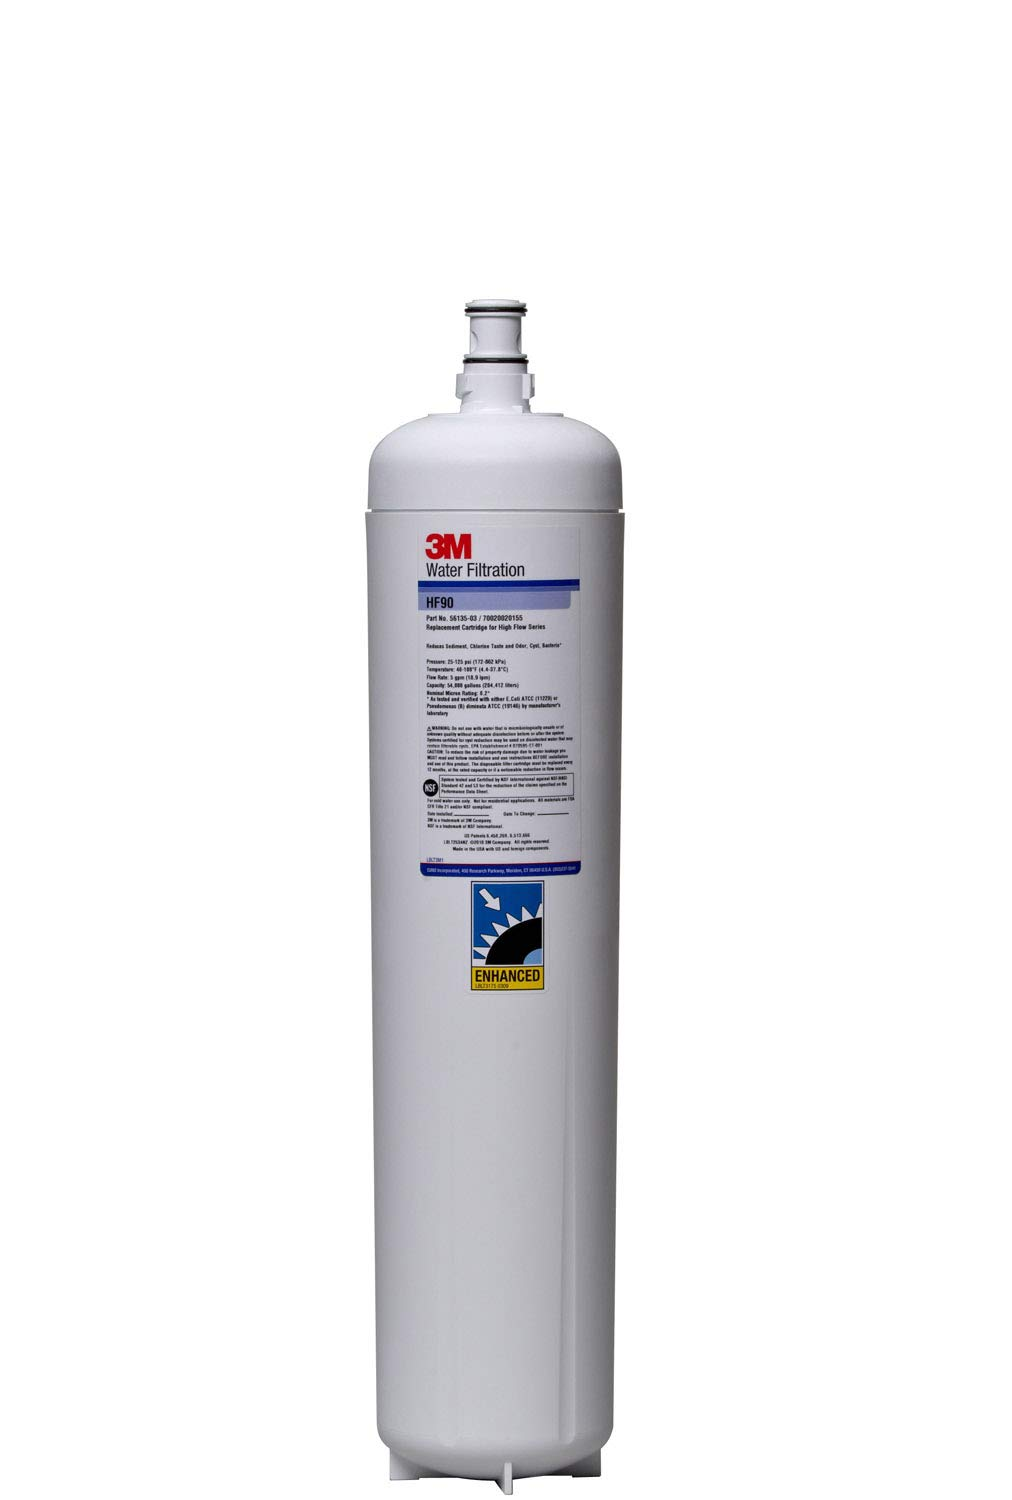 3M Water Filtration Products Filter Cartridge, Model HF90, 54000 Gallon Capacity, 5 gpm Flow Rate, 0.2 Micron